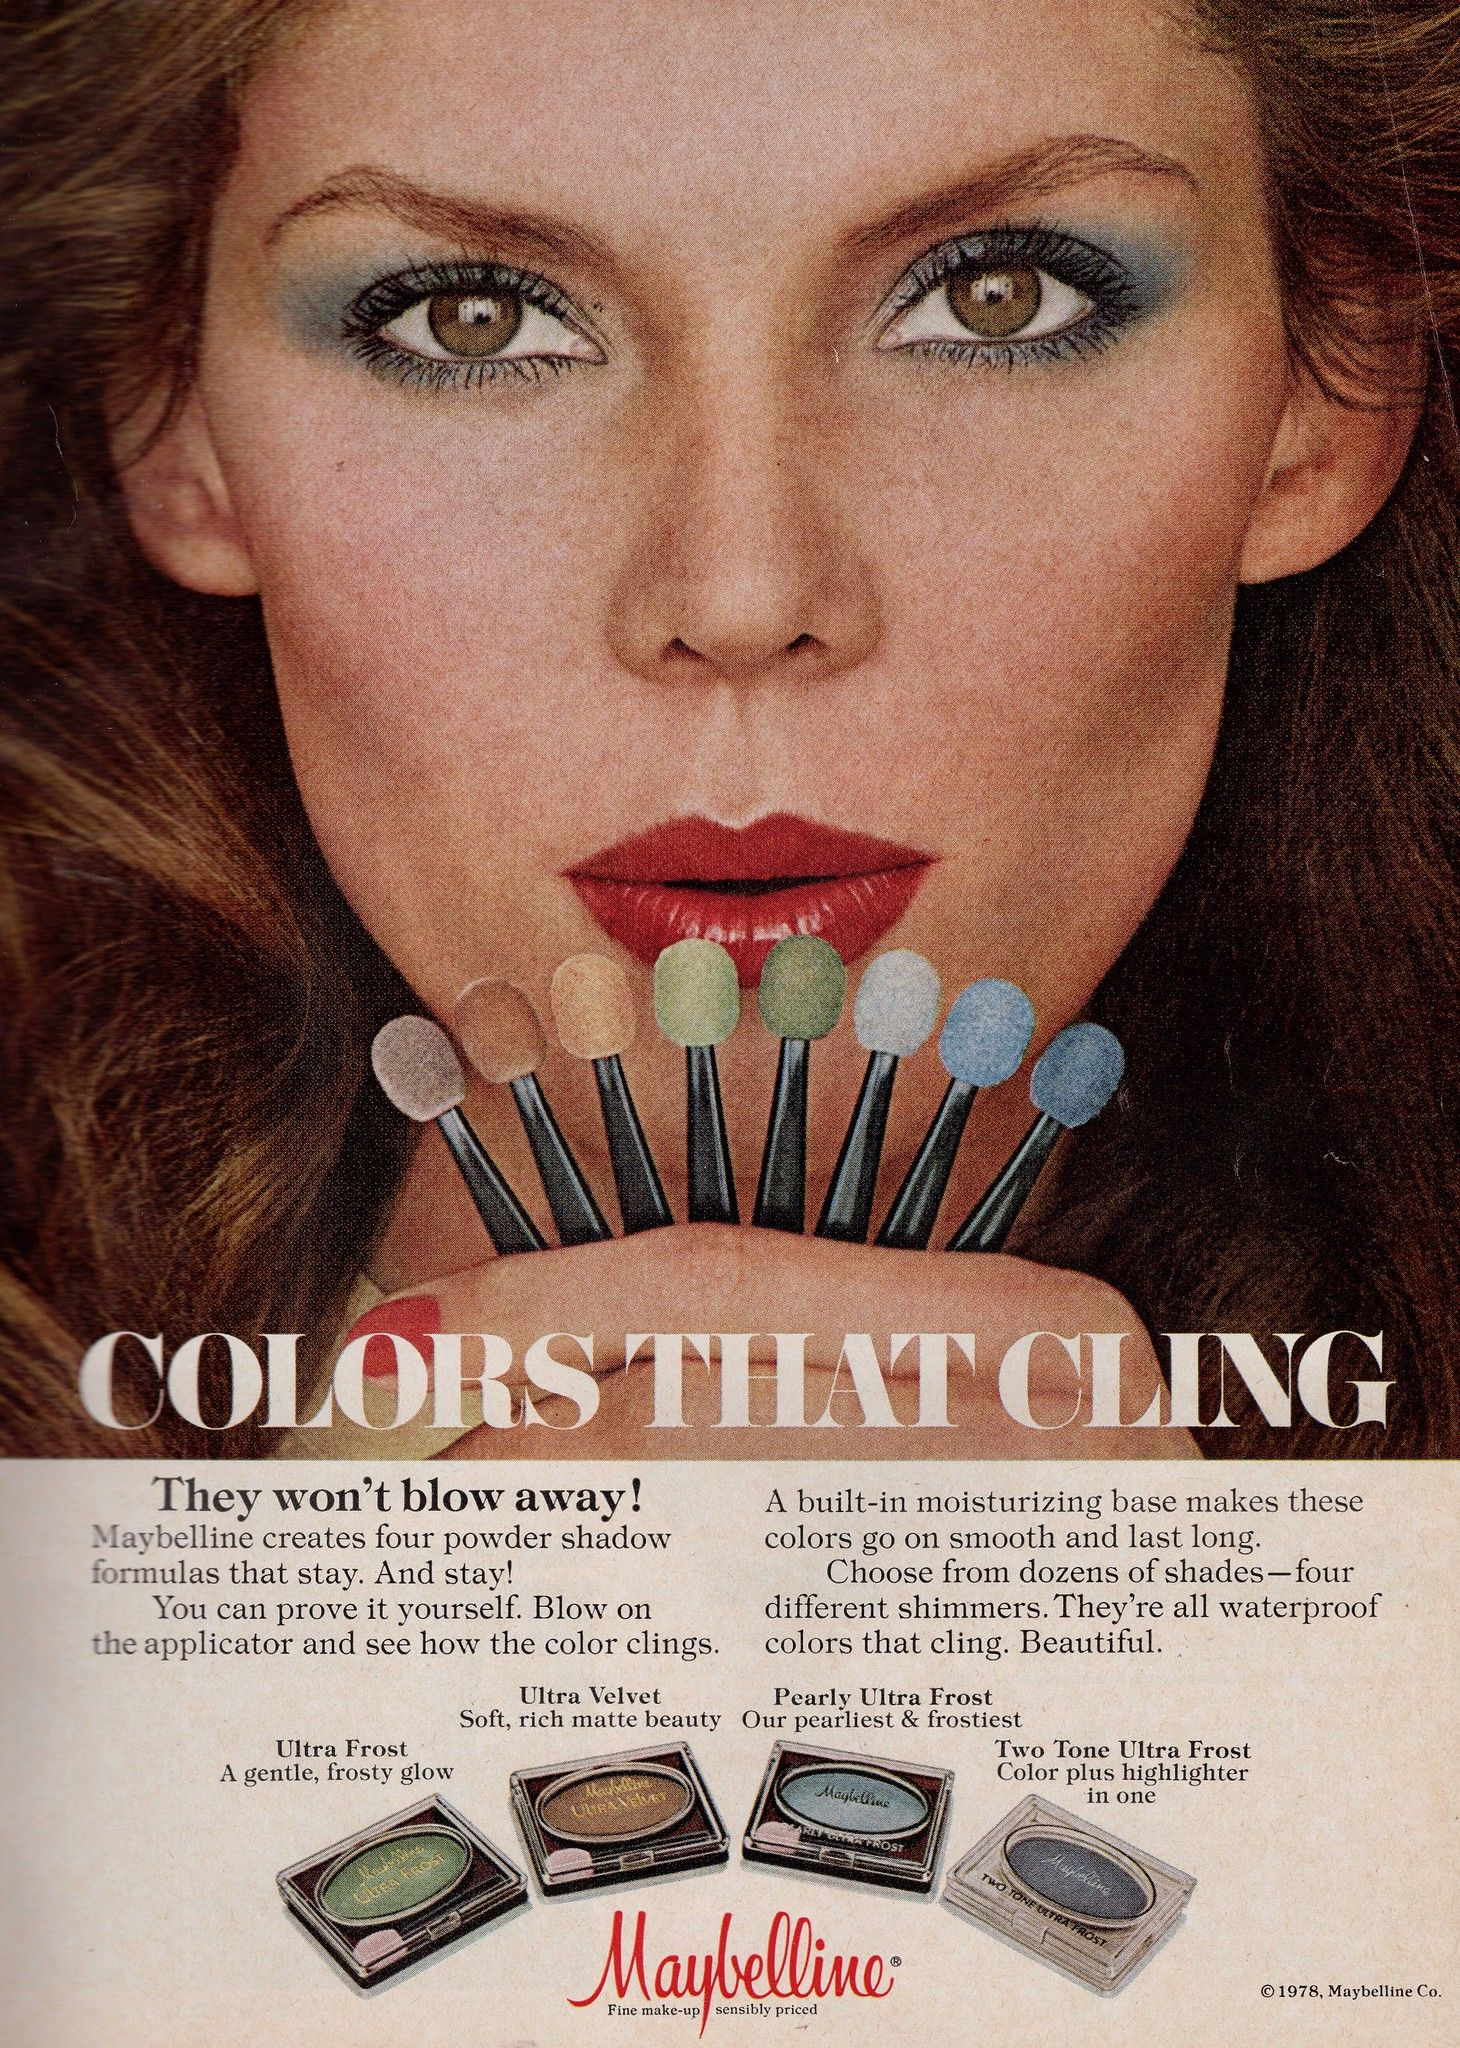 Maybelline 1979 In 2020 Vintage Makeup Ads Hair And Makeup Artist